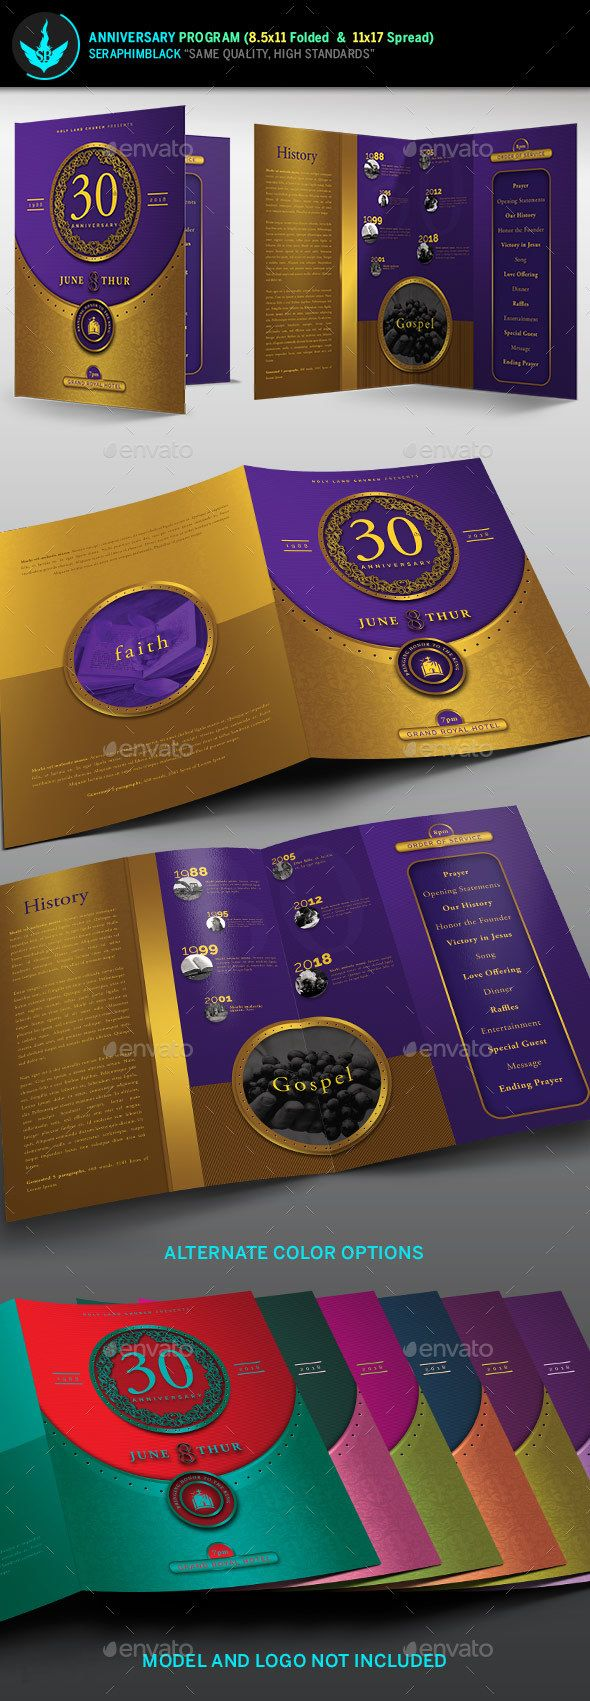 gold and violet church anniversary program template informational